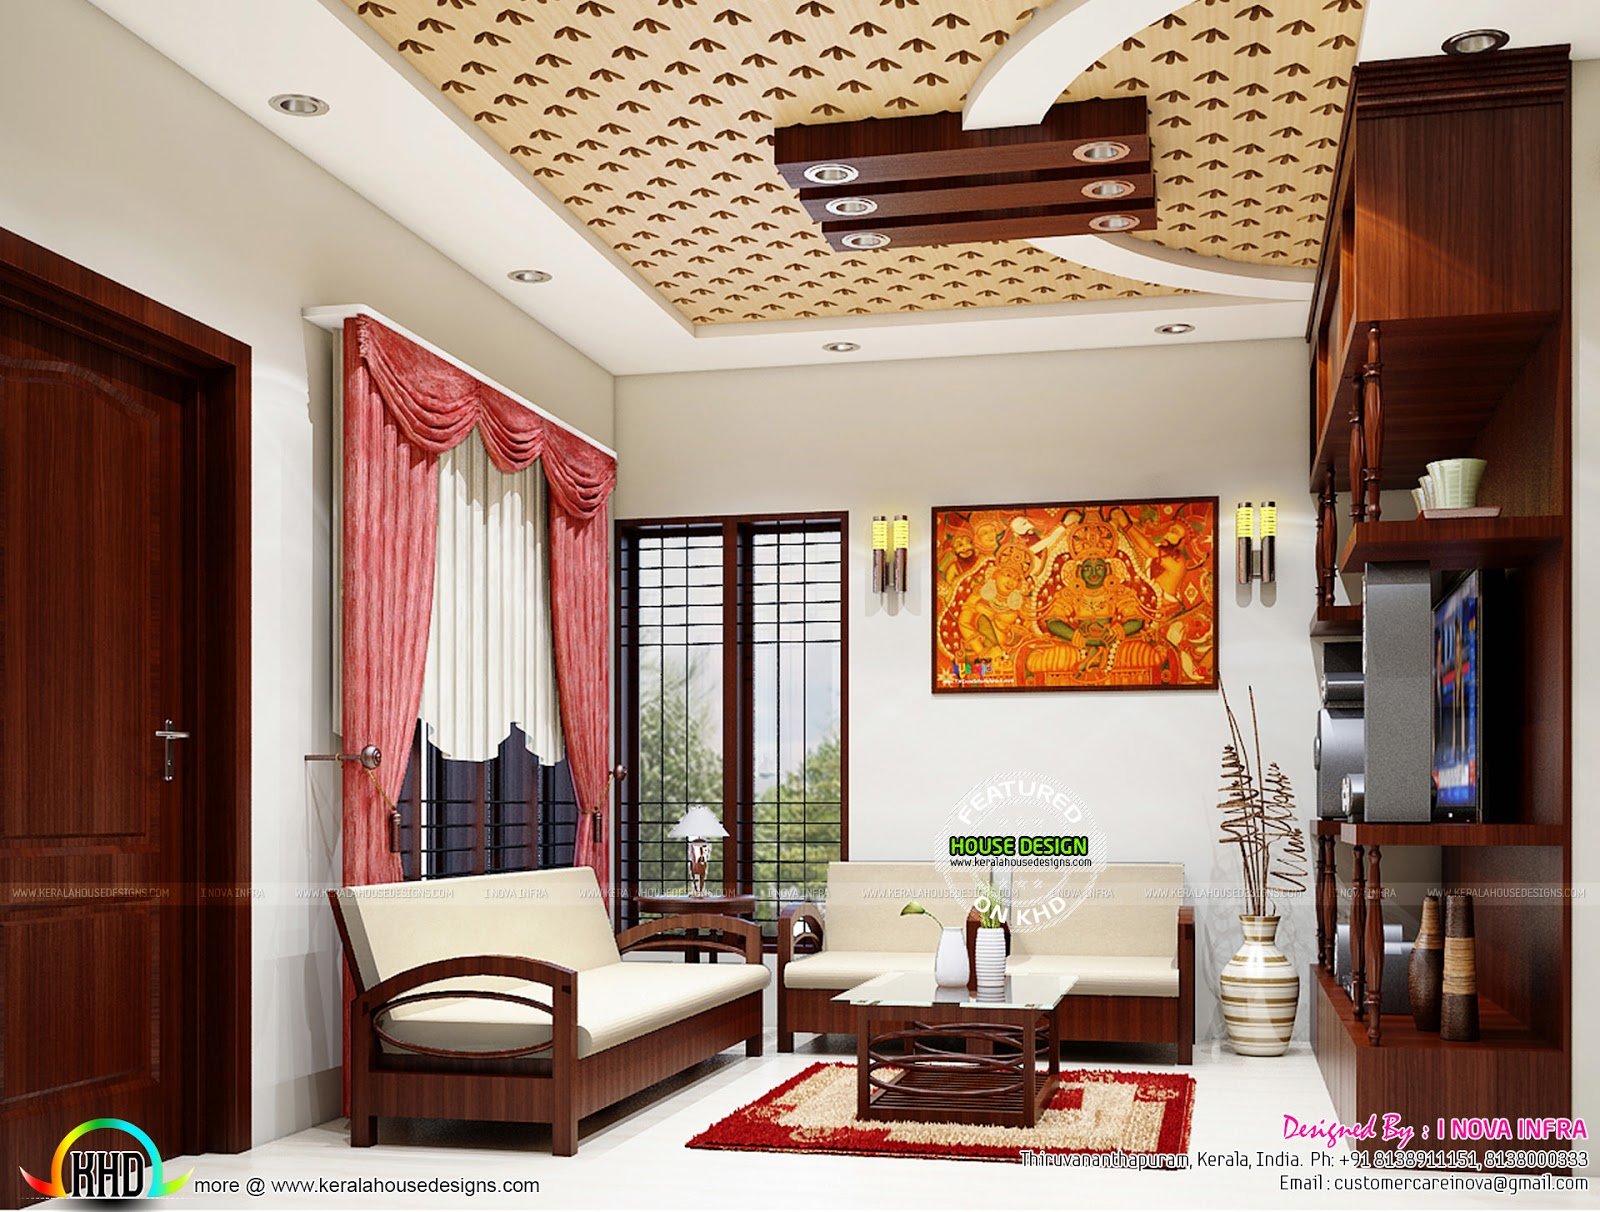 Kerala traditional interiors kerala home design and for Photo gallery of interior designs